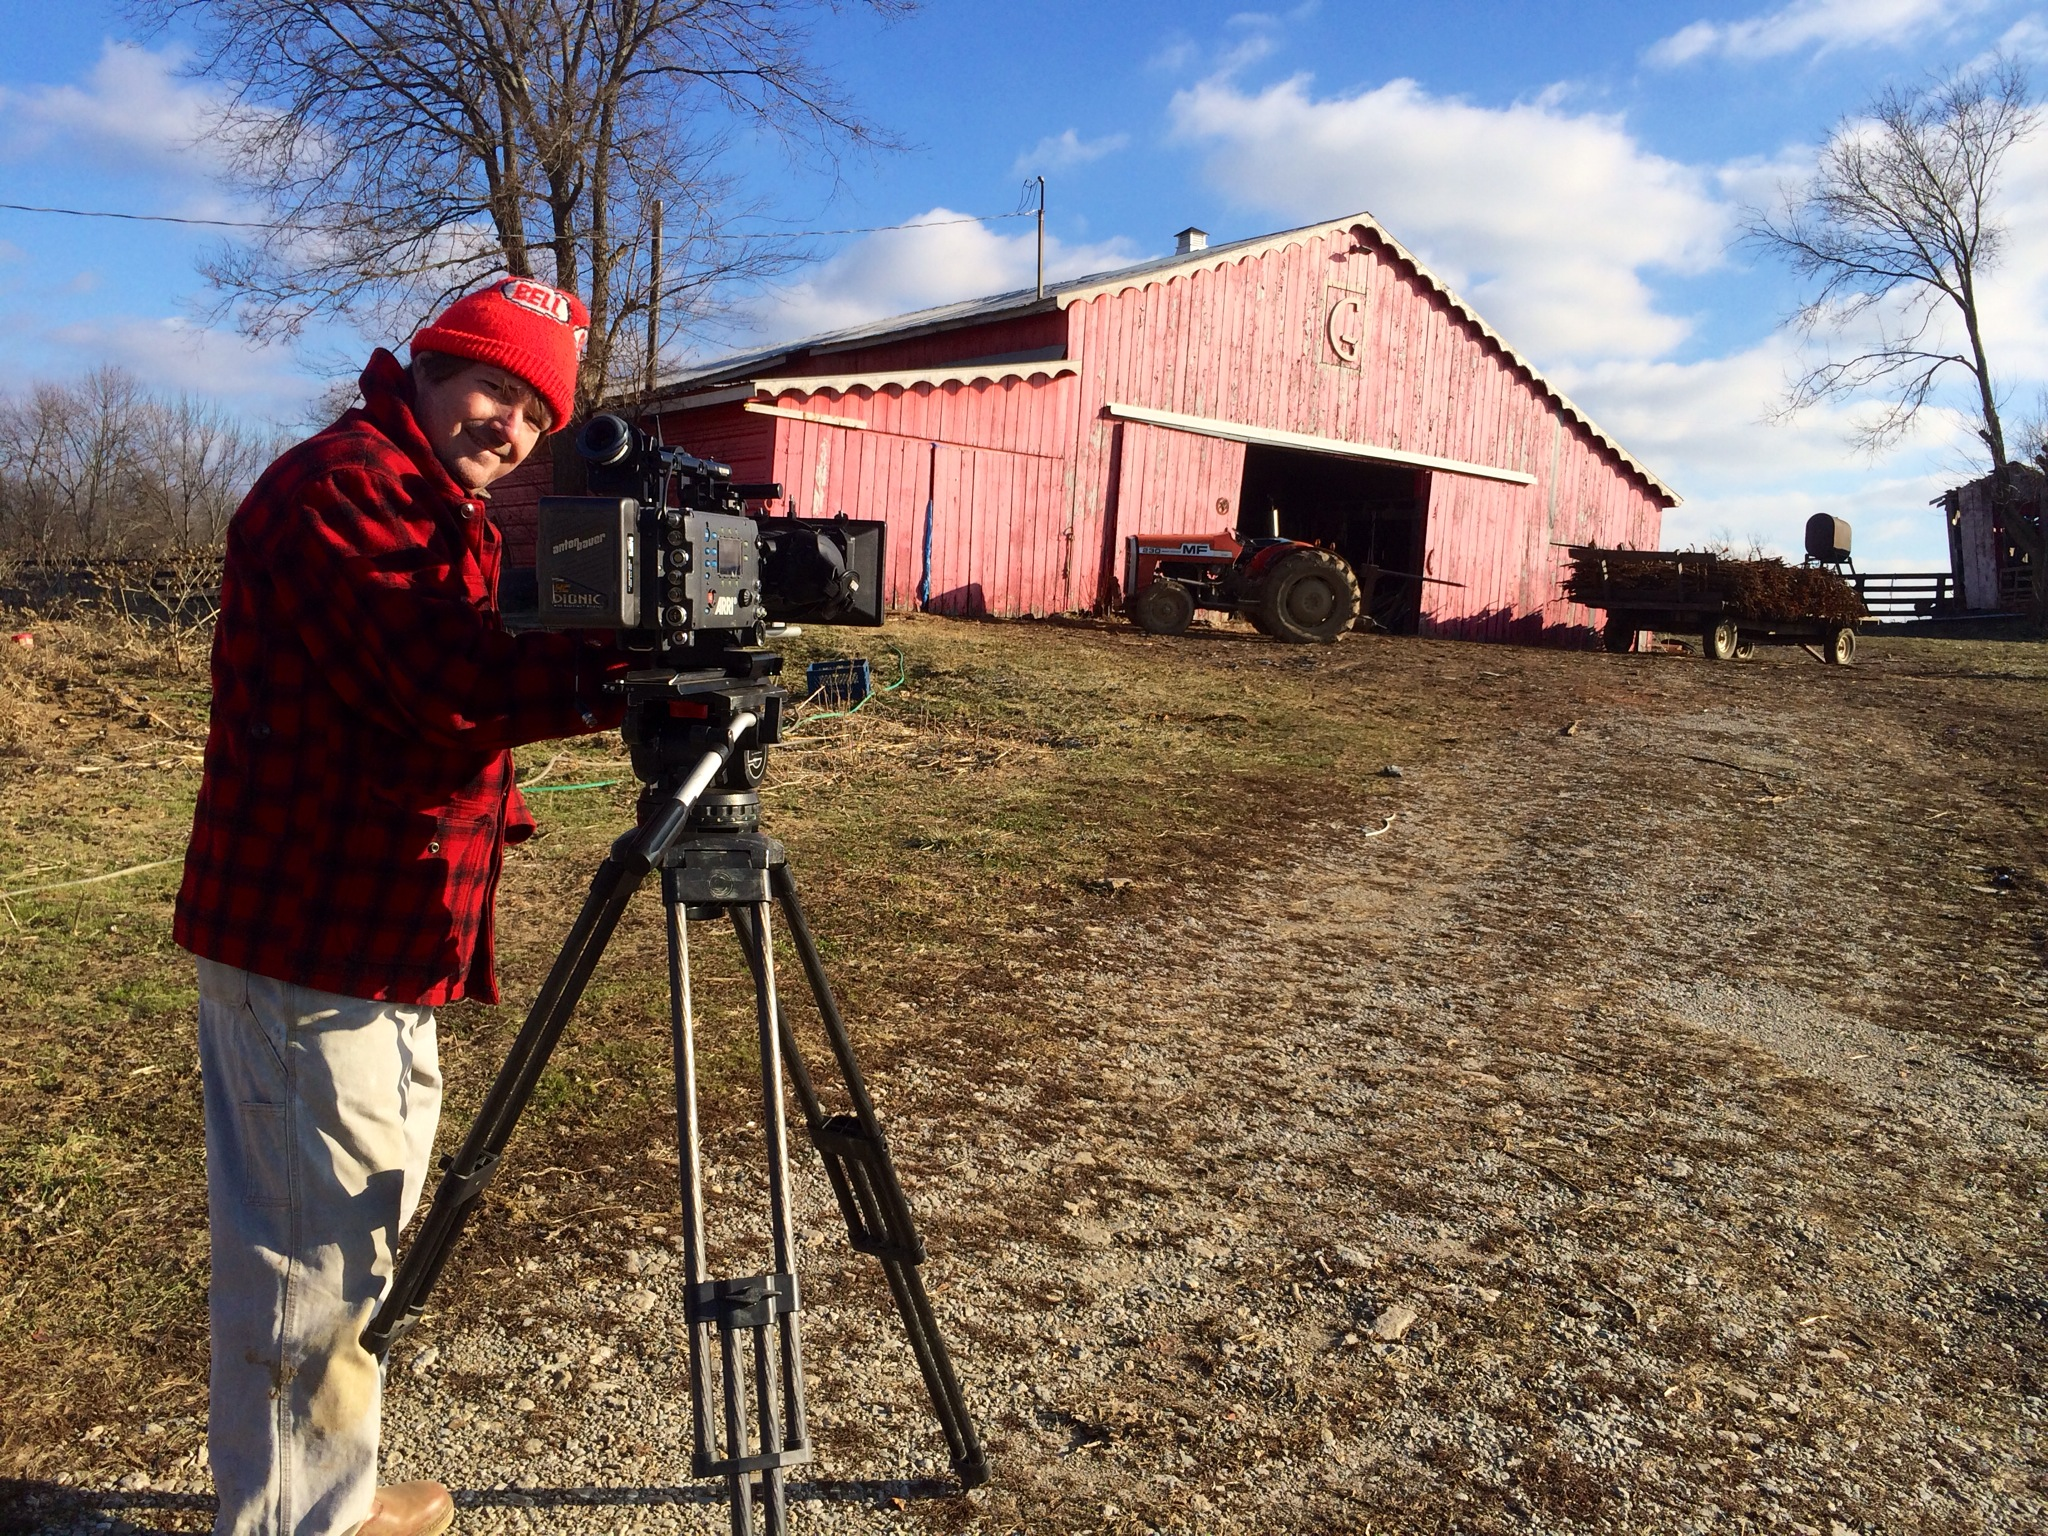 Lee Daniel shooting the Grigsby's in around 20° weather.